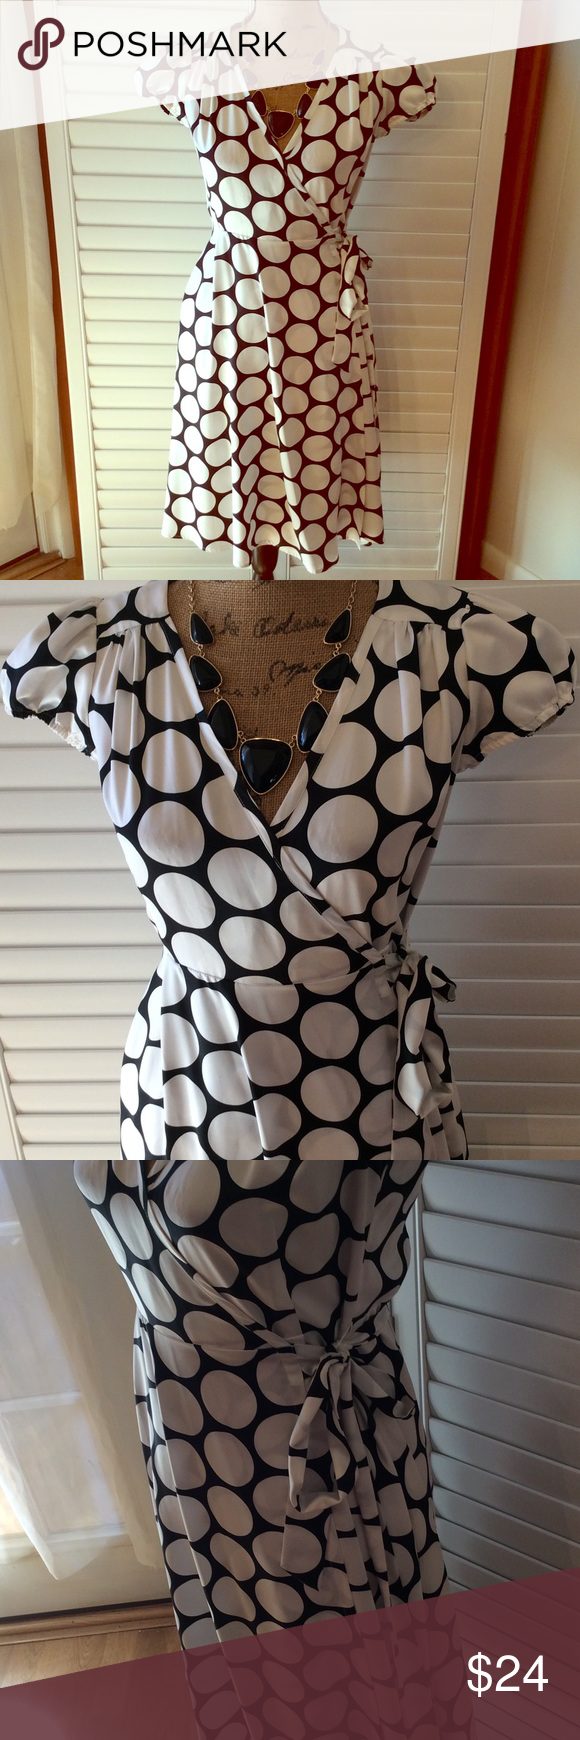 "Polka Dot Banana Republic Dress Cute dress by Banana Republic. Size 2. Black and white. Polyester. Wrap dress. Length is 41"" waist is adjustable and so is bust. Dresses Midi"